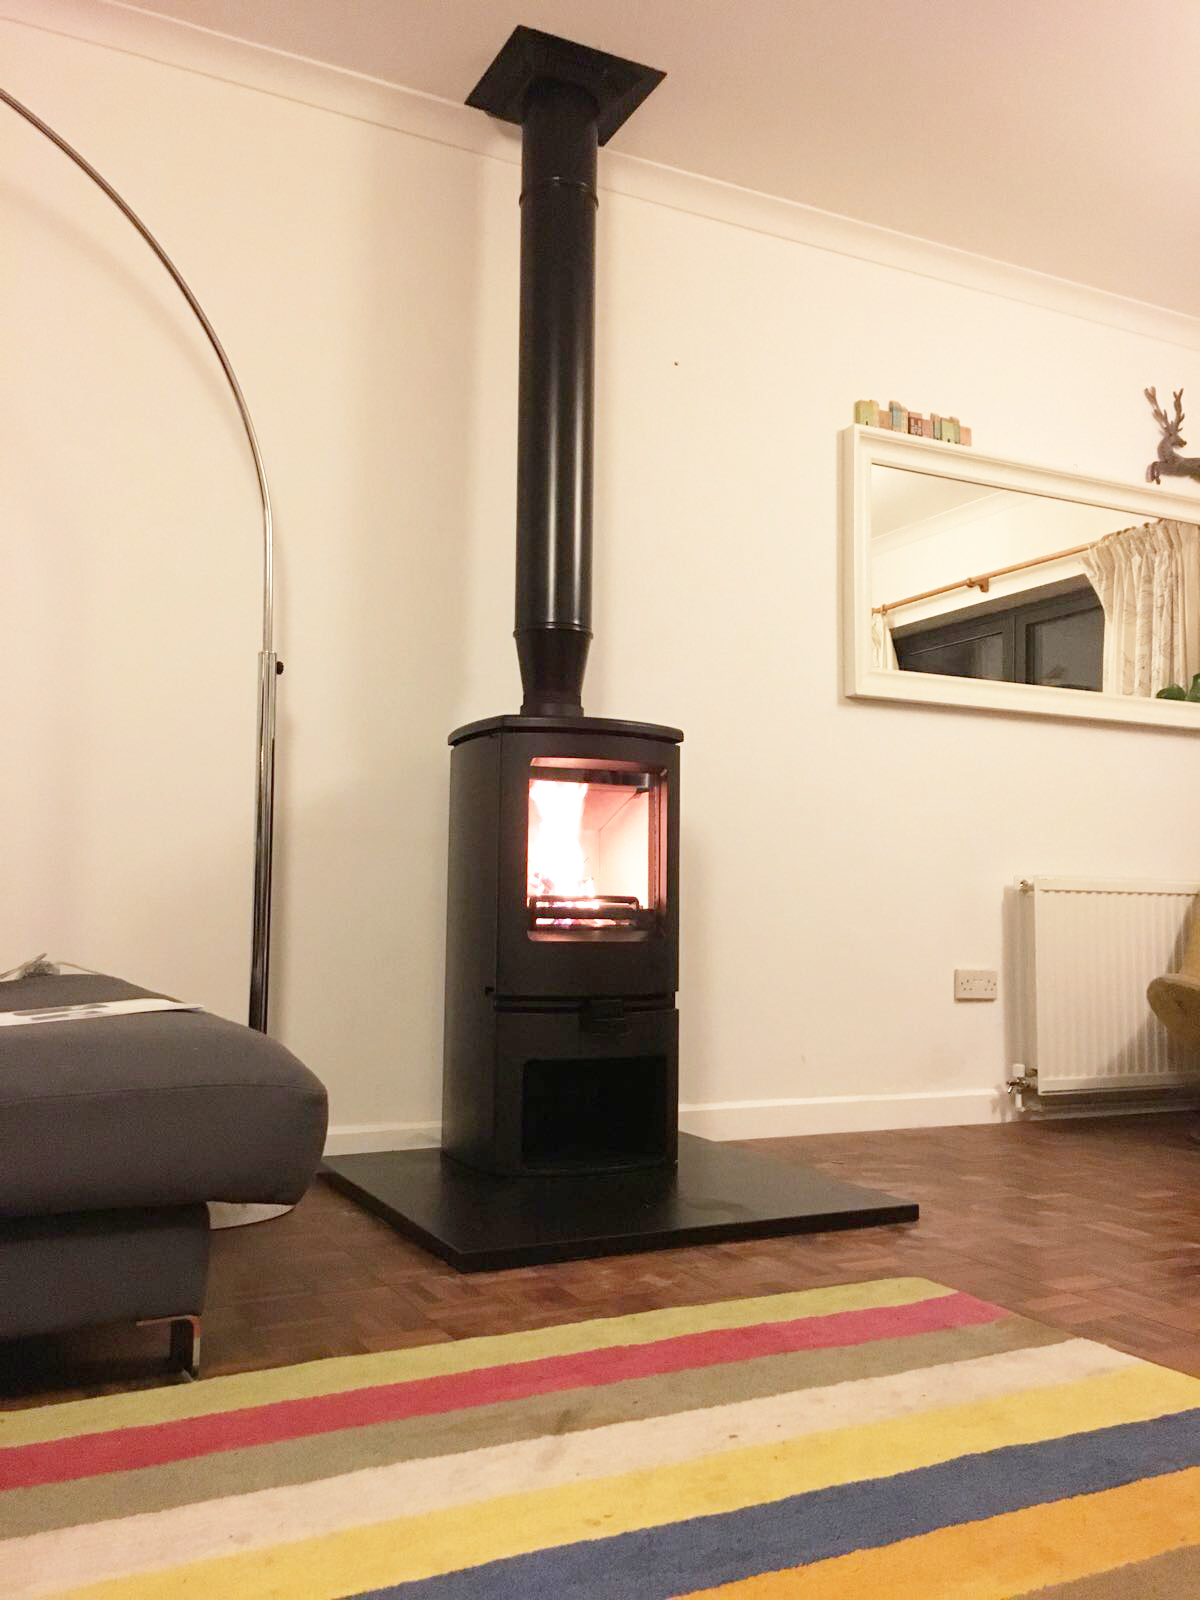 Embers Bristol Stove Installation with no Chimney